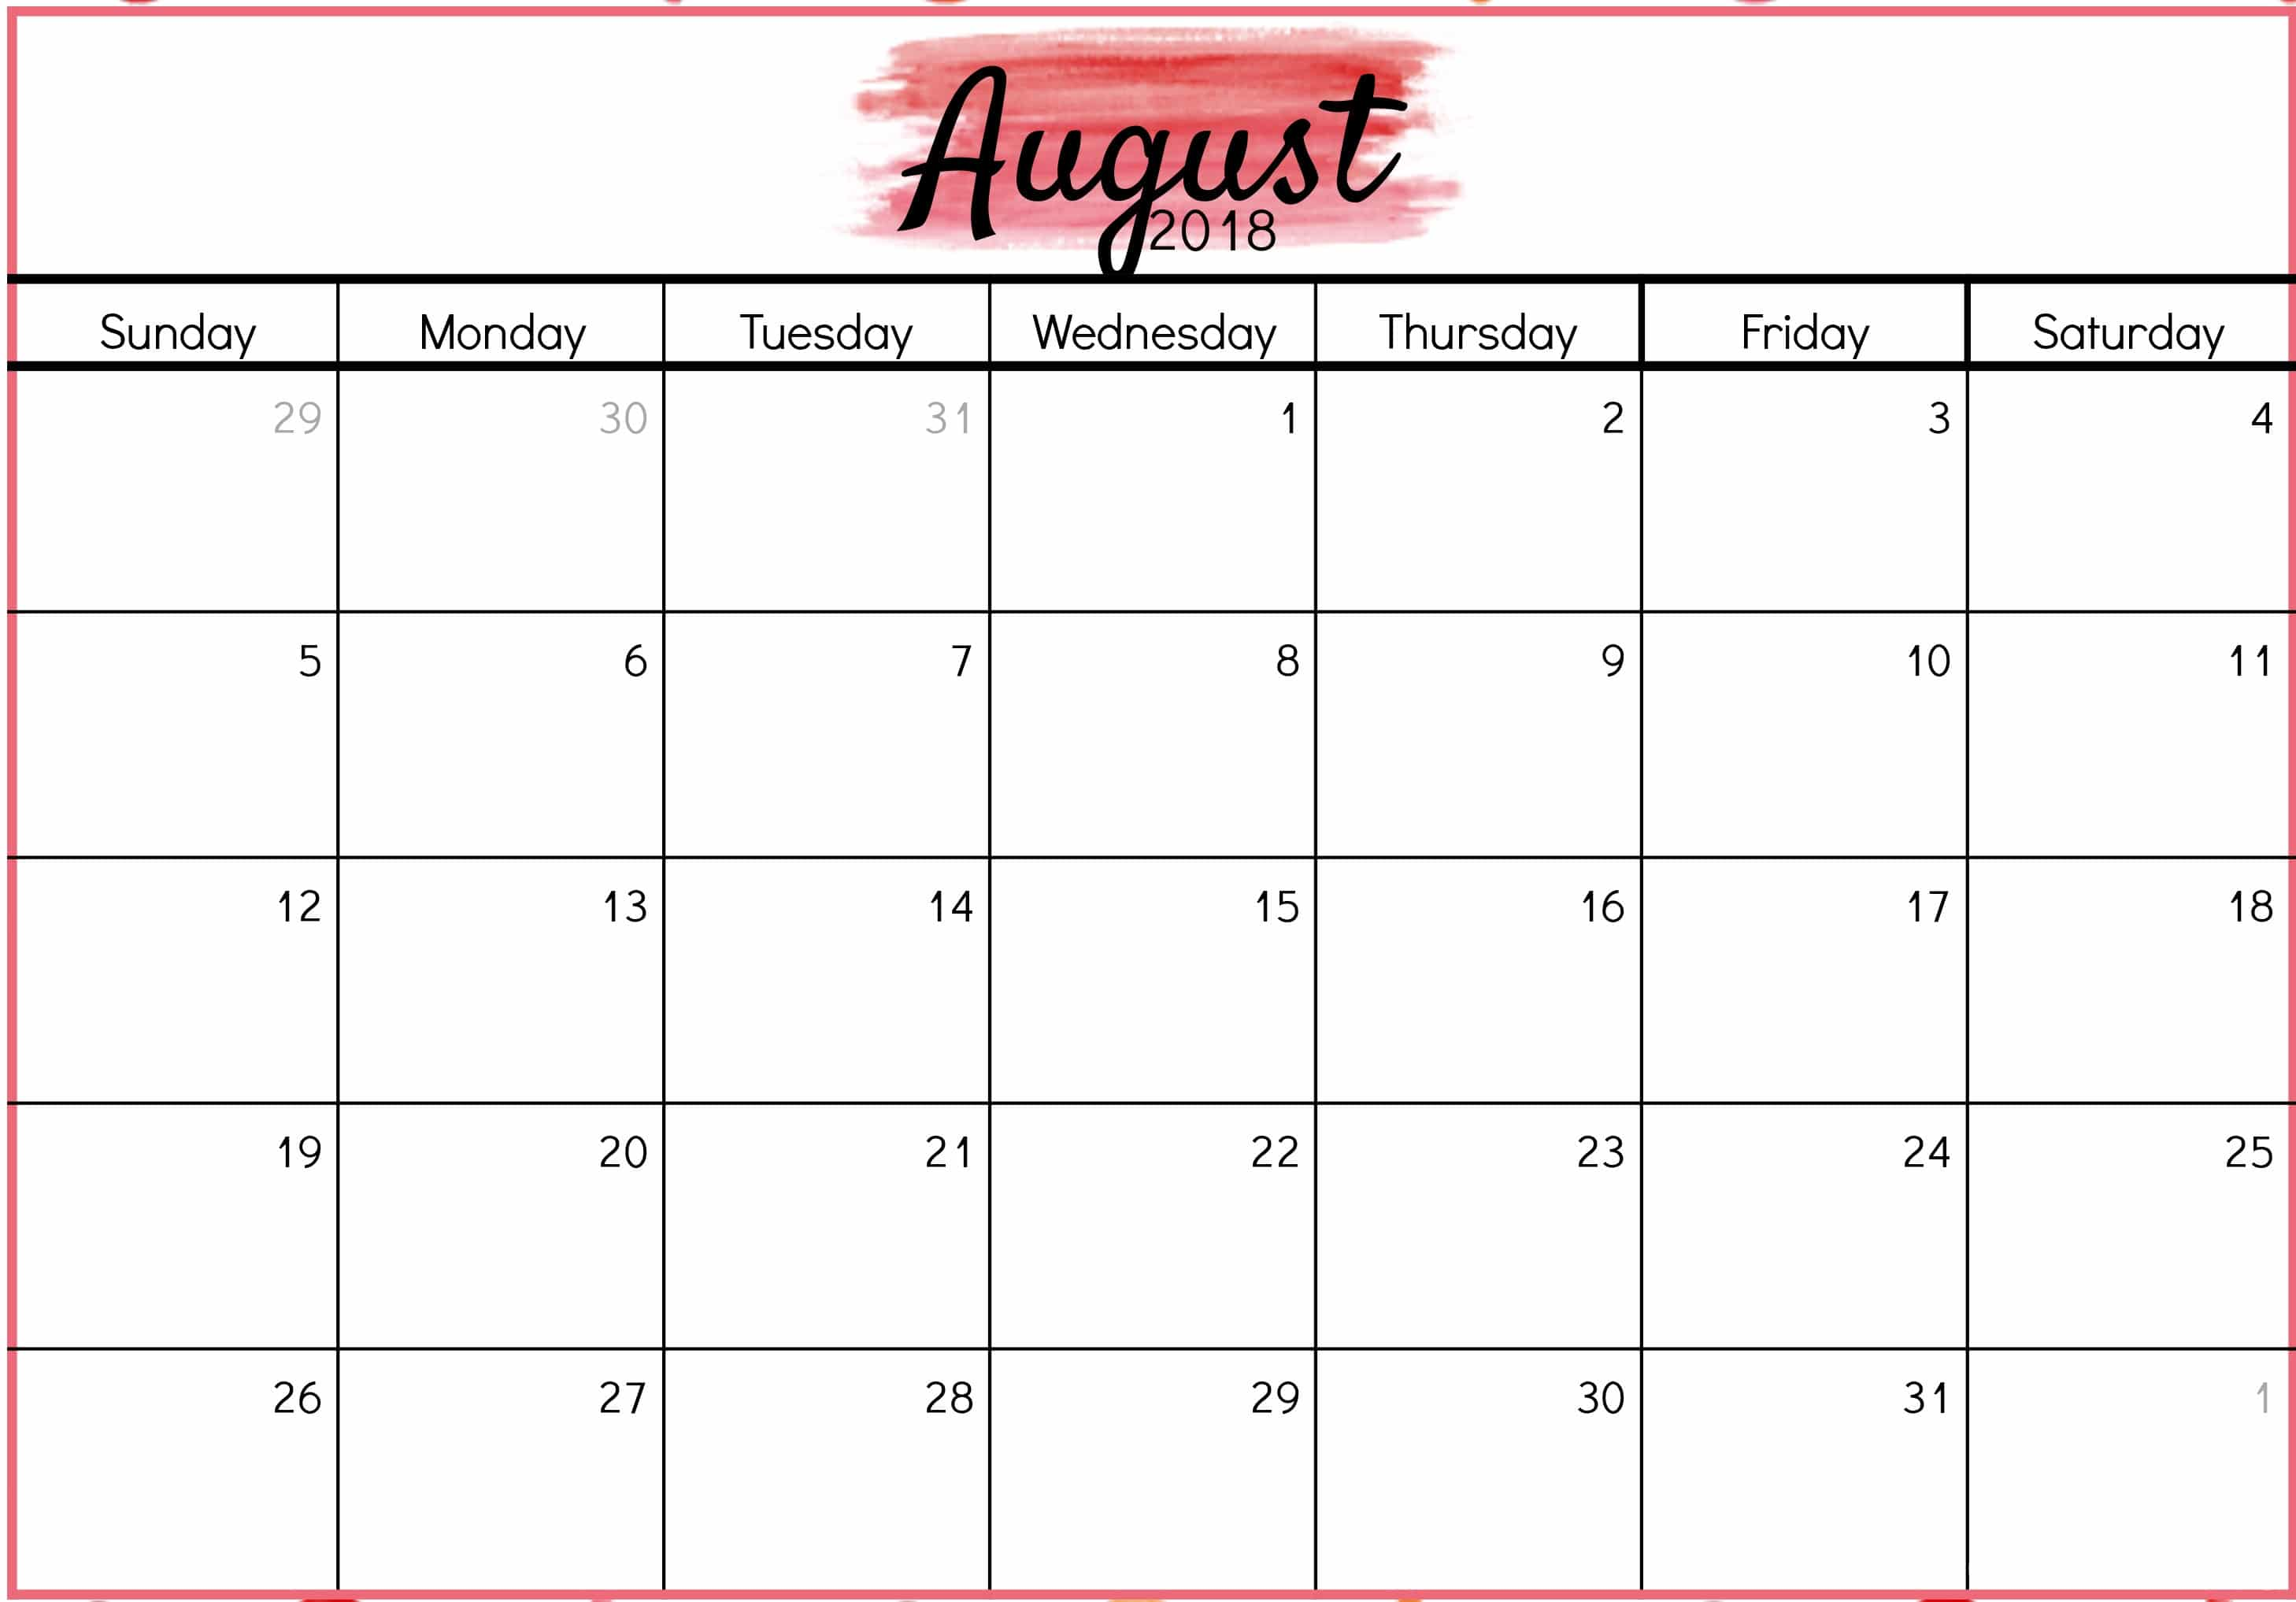 August Calendar 2018 Template Vertical - Free HD Images Free HD Images August Calendar 2018 Template